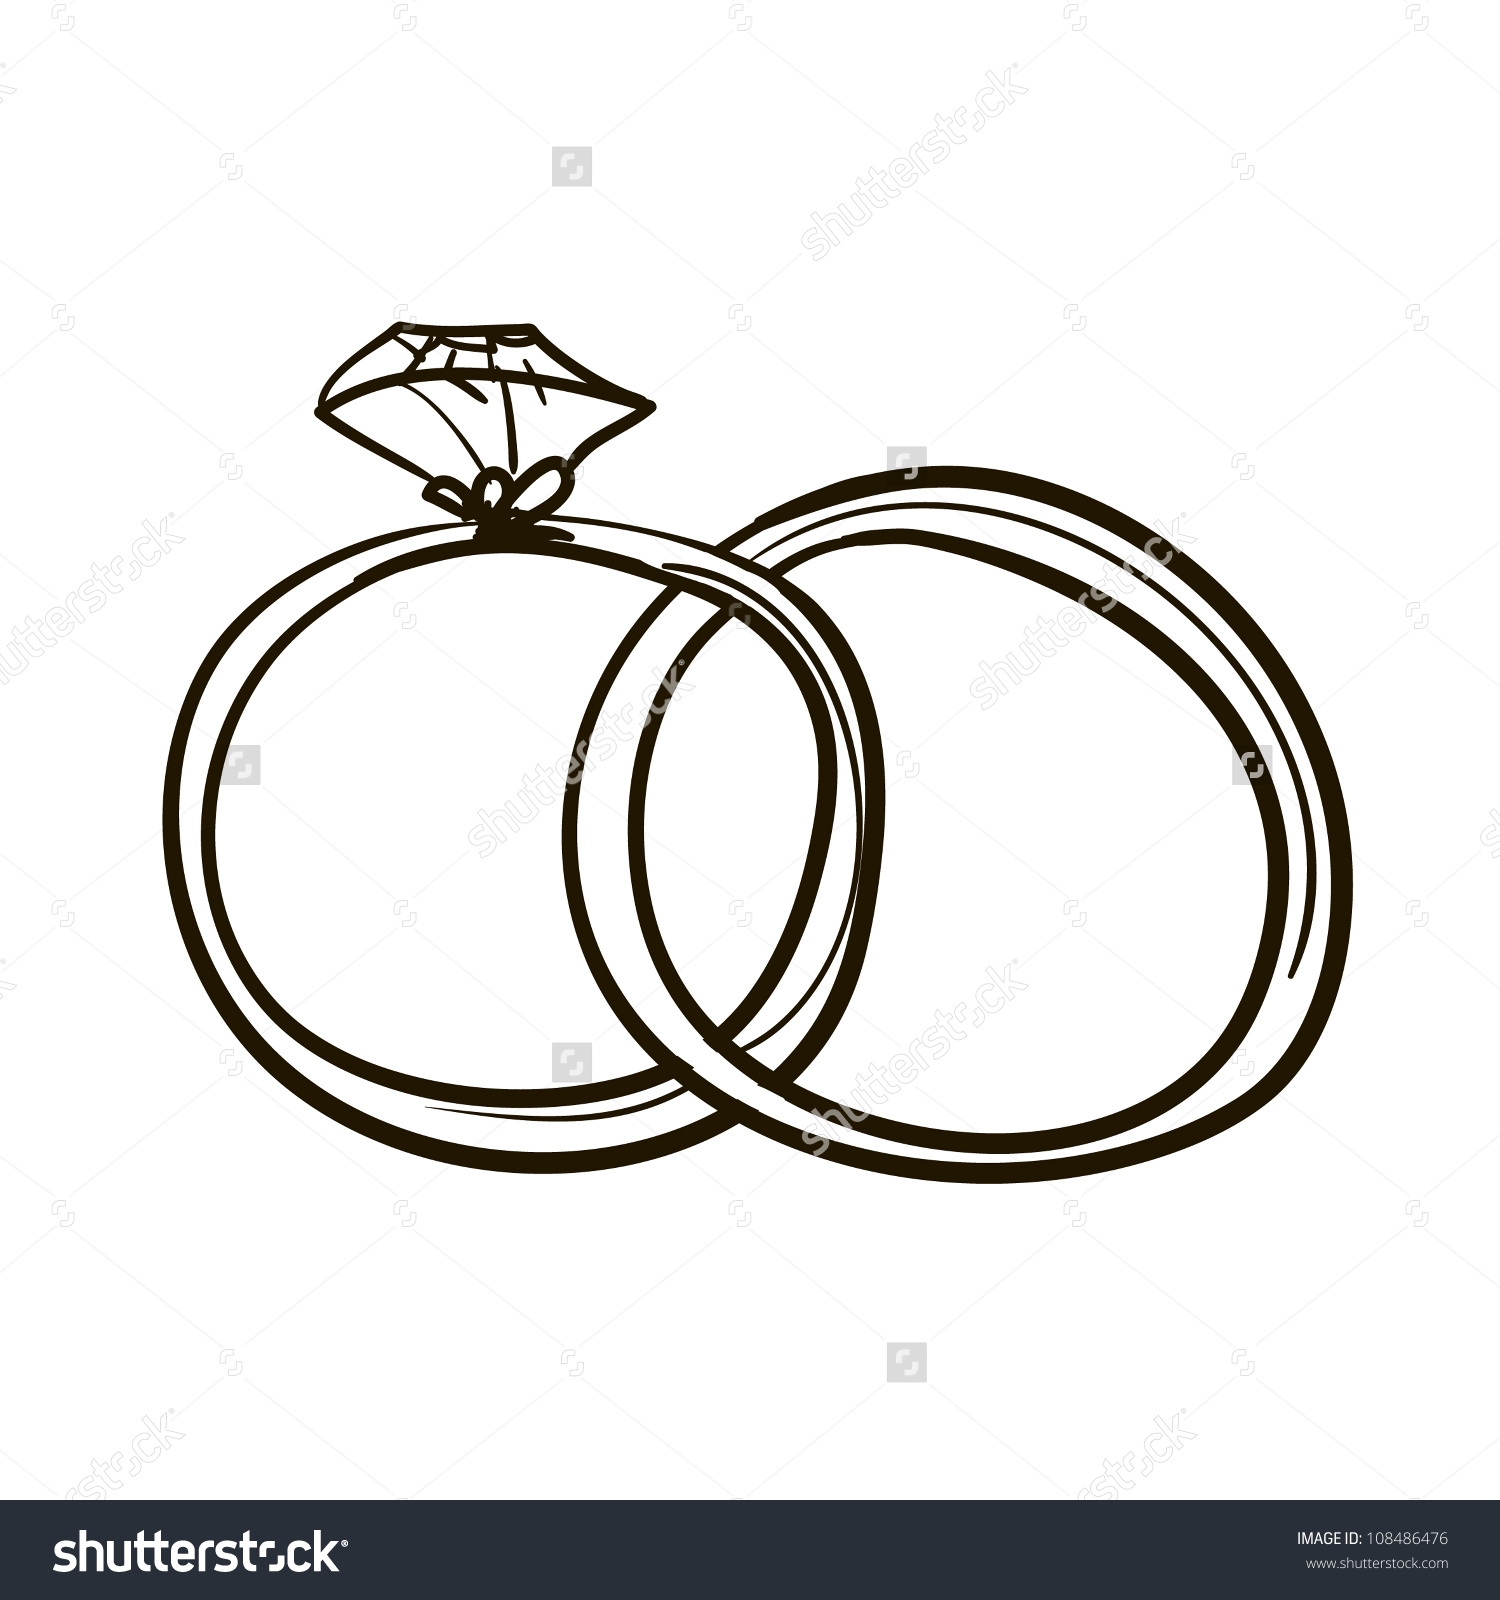 Two wedding rings clipart png free library Two Wedding Rings Childrens Sketch Stock Vector 108486476 ... png free library